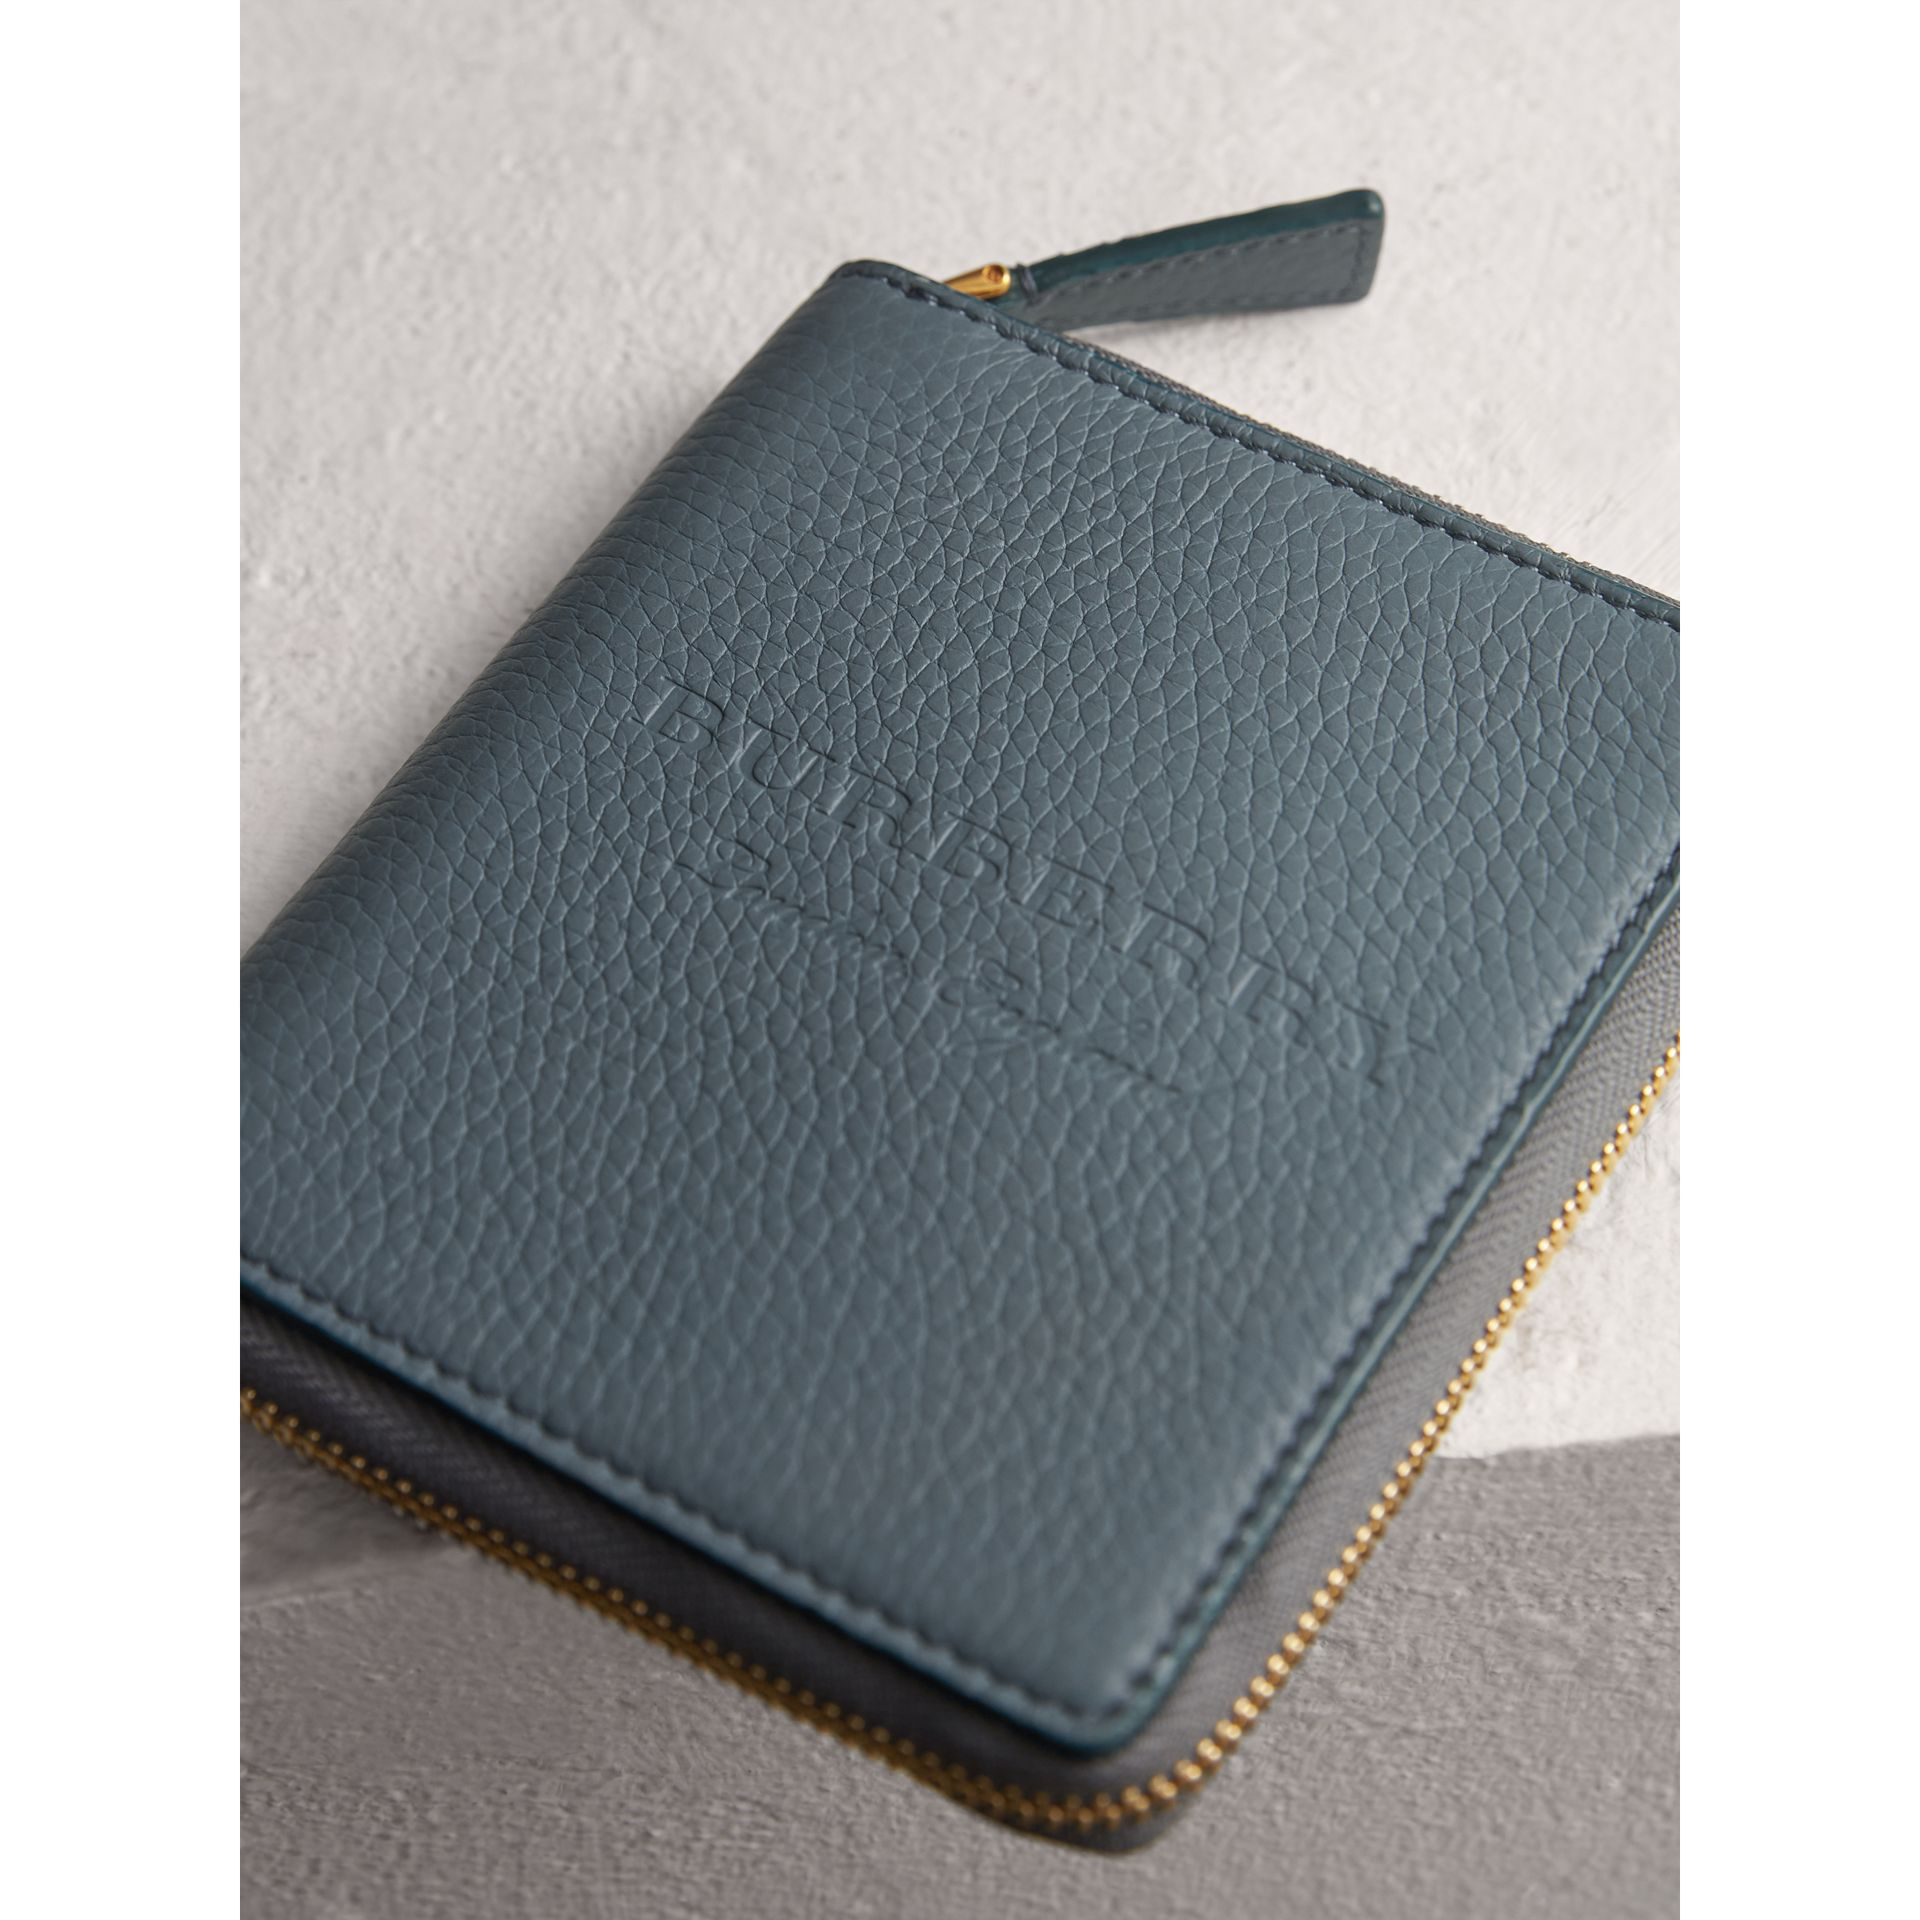 Embossed Grainy Leather Ziparound A6 Notebook Case in Dusty Teal Blue | Burberry United States - gallery image 1